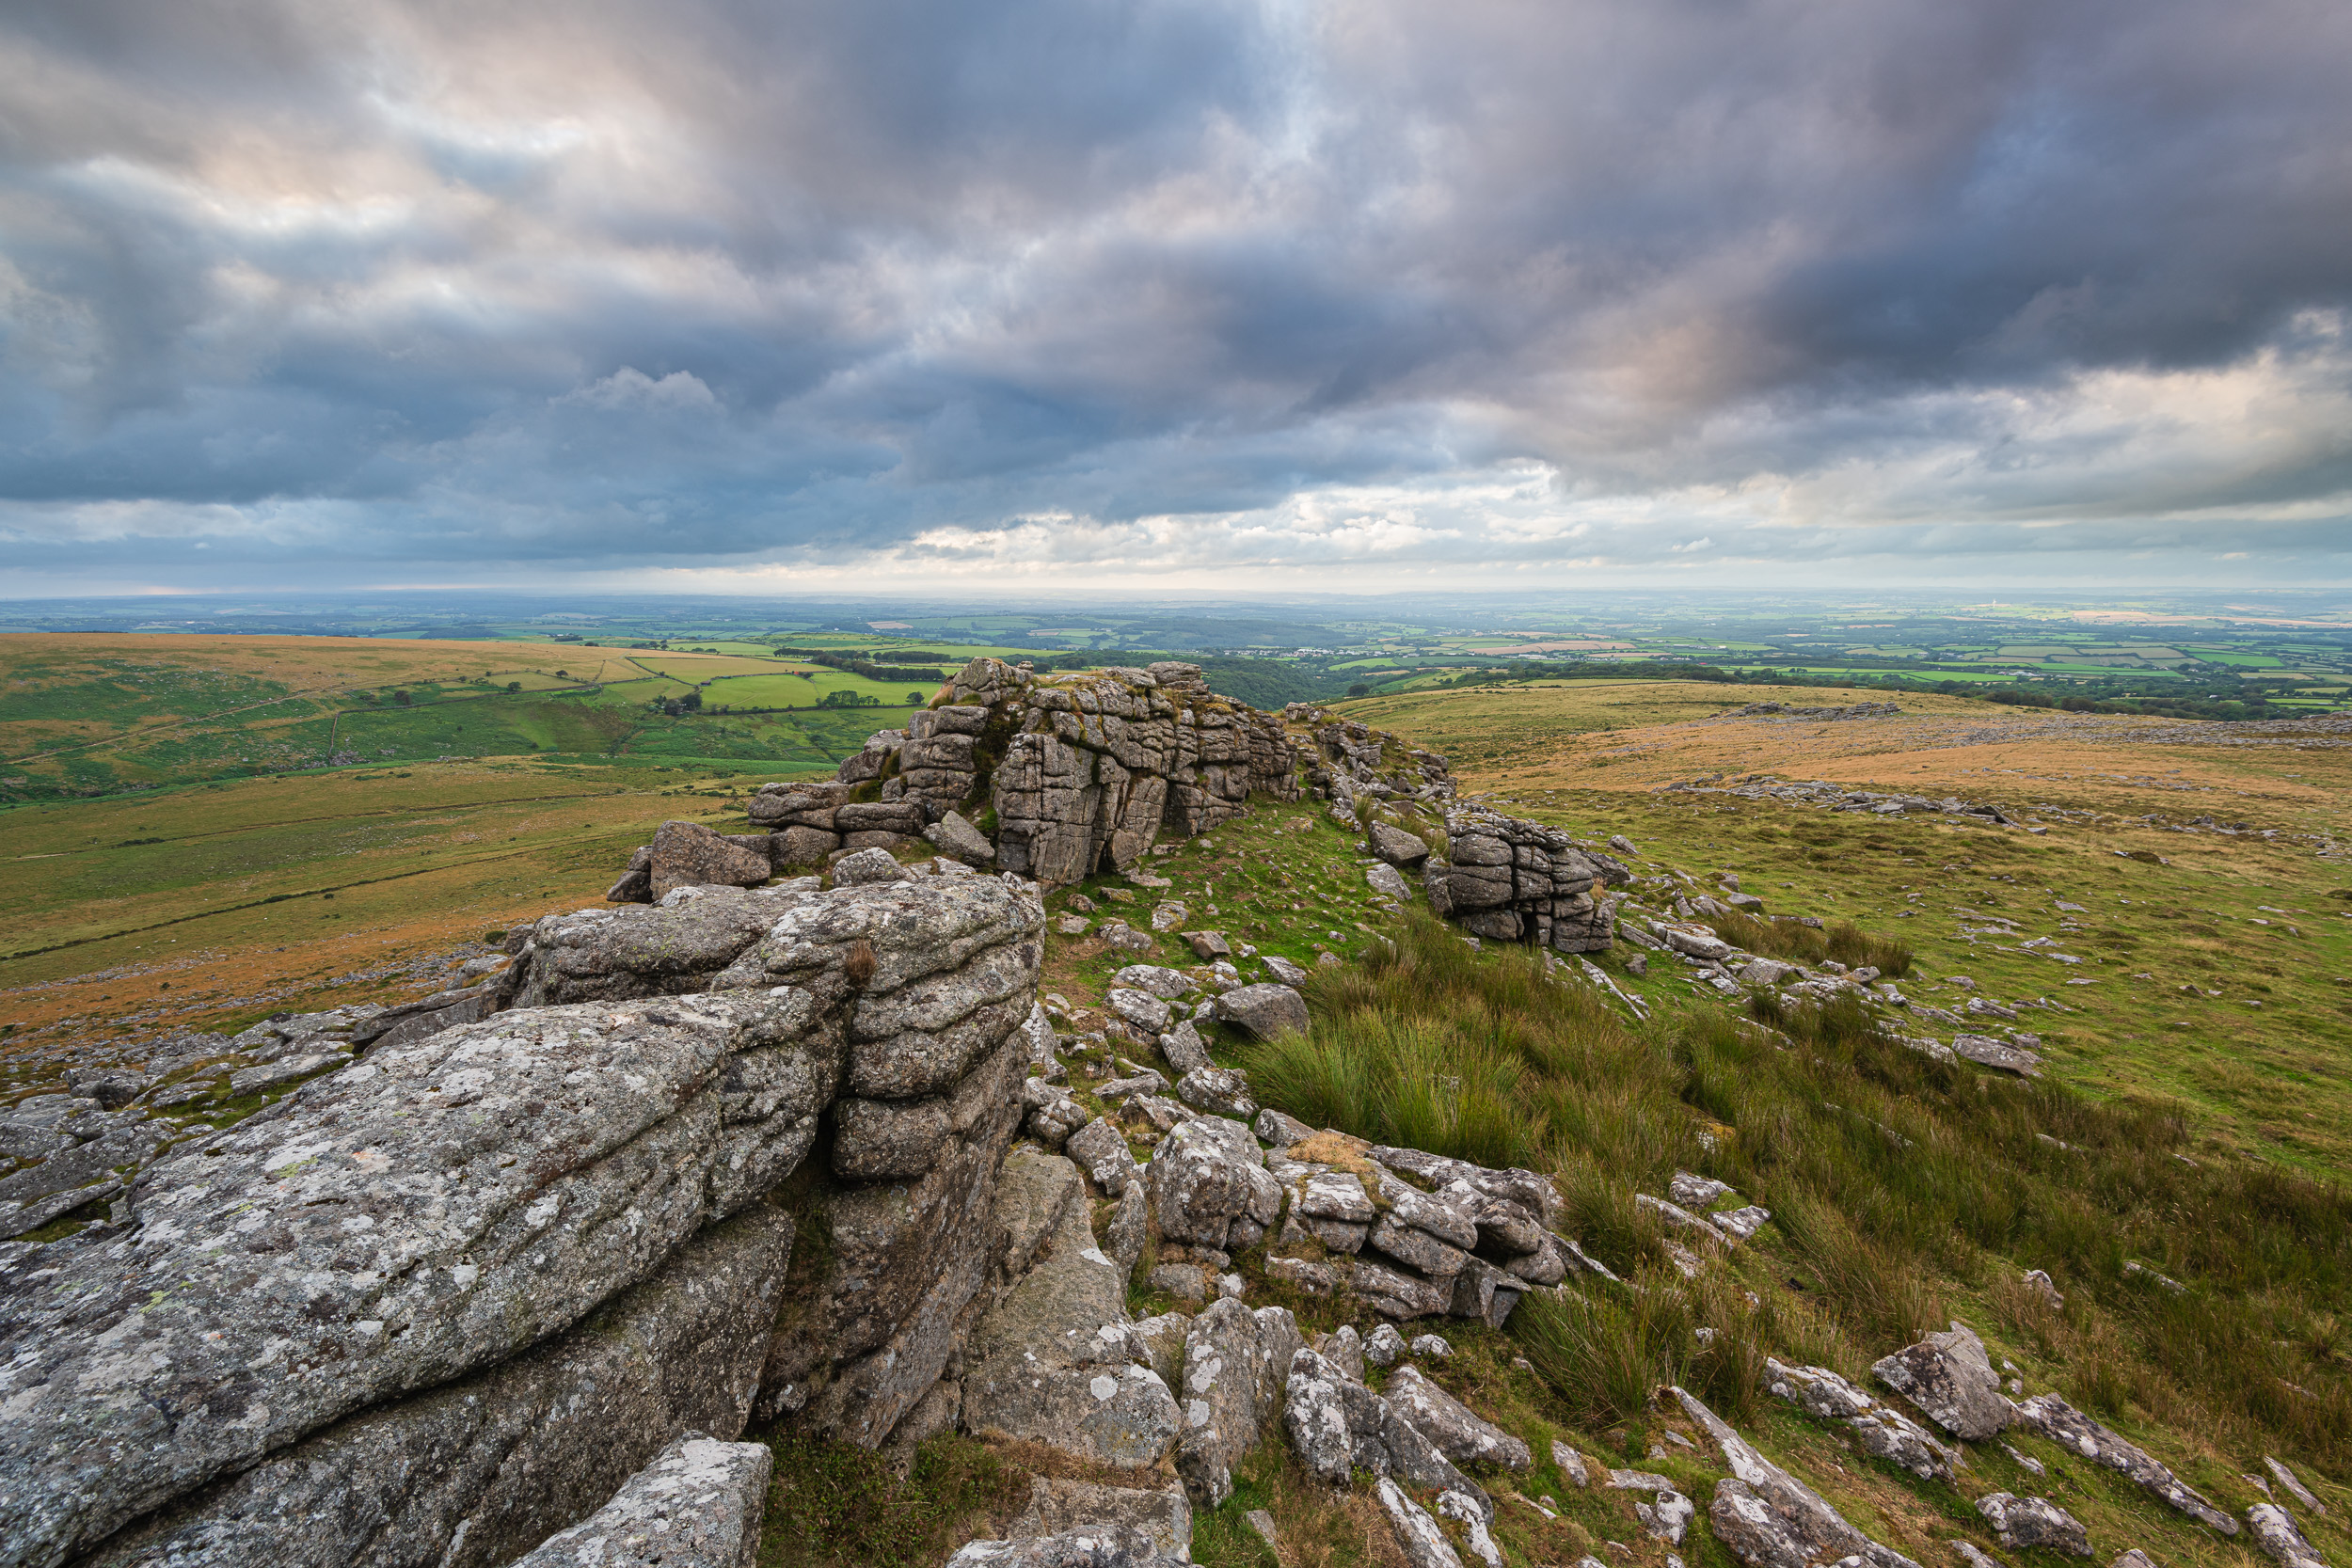 Stormy Belstone #2, Dartmoor, Devon  - Nikon D850, Nikkor 16-35 mm f/4 at 16 mm, f/13, 1/3rd sec at ISO 64, Kase CPL and ND grad.